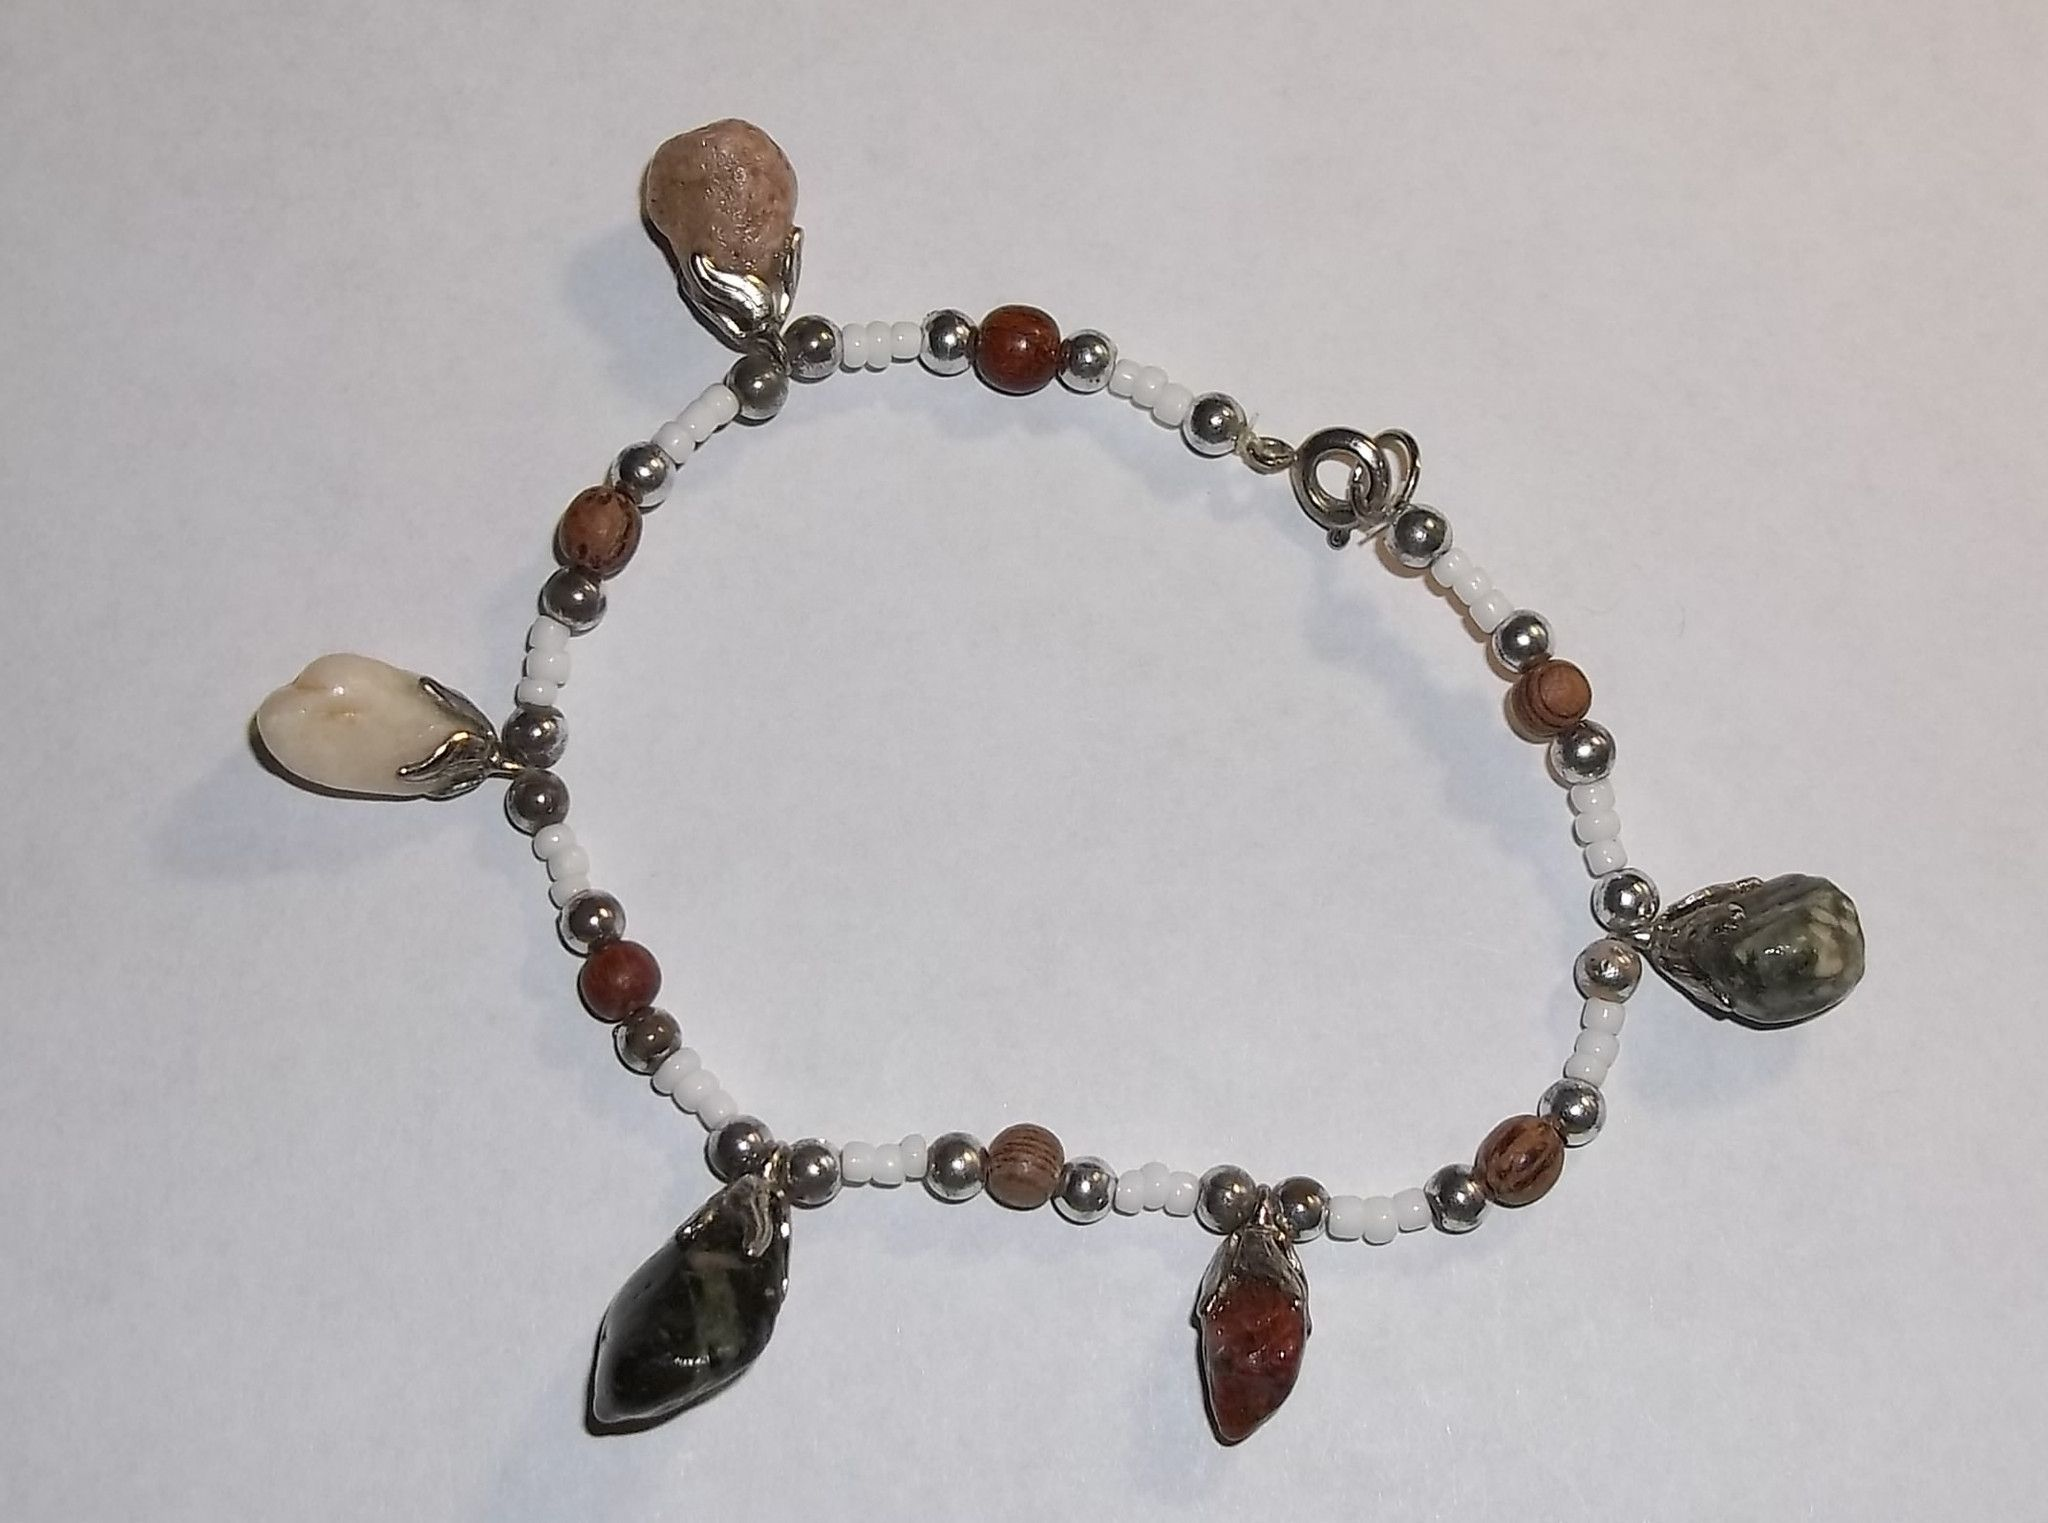 Vintage Bohemian Style Beaded Hand Crafted Bracelet with Natural Gemstone Charms 7 1/2""